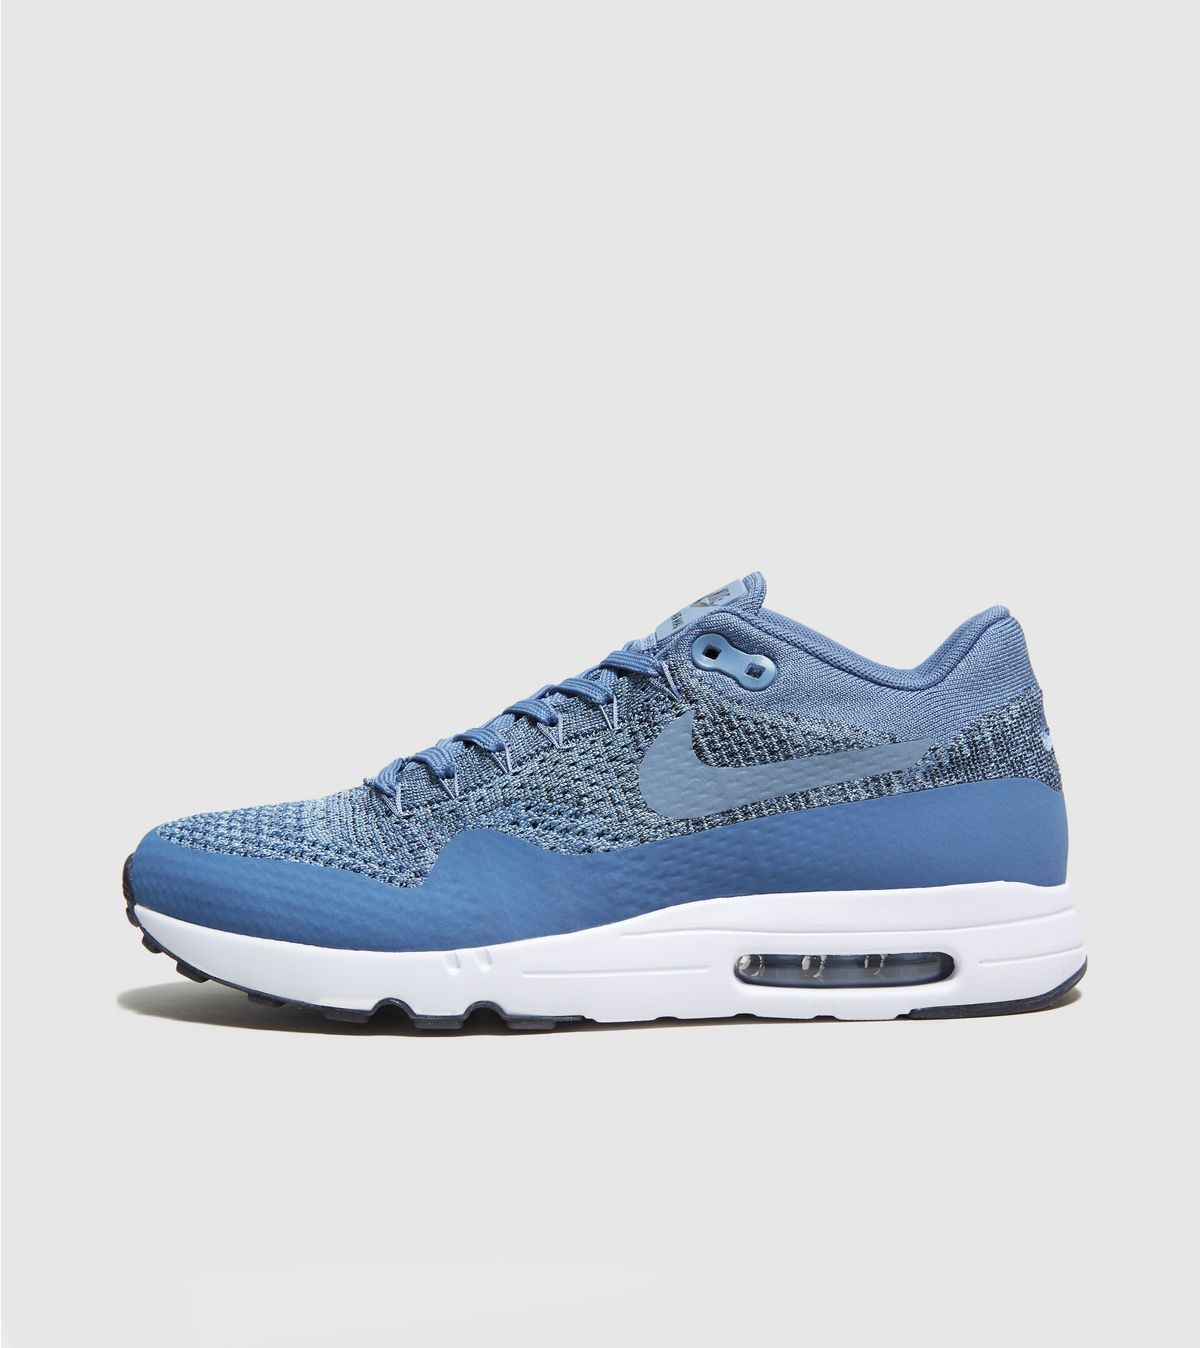 timeless design 13336 5a892 Nike Air Max 1 Ultra Flyknit - find out more on our site. Find the freshest  in trainers and clothing online now.